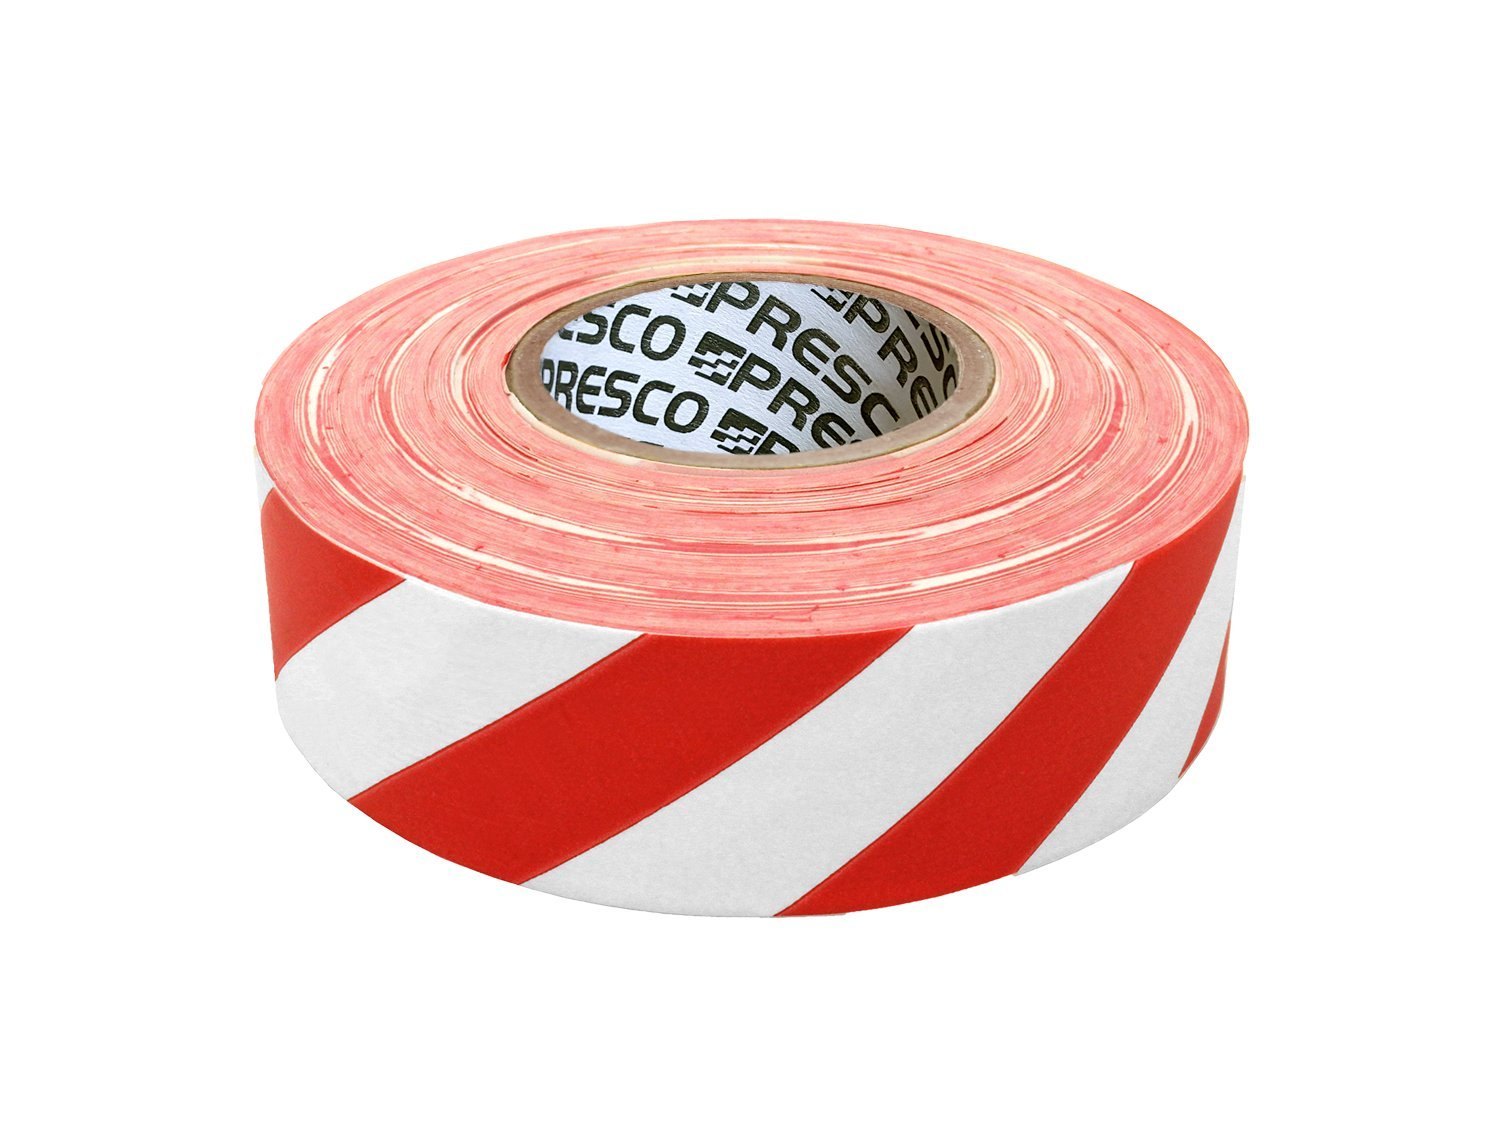 3.75 Length 1.18 Wide Presco SPGREF 1-3//16 x 150 Pink Glo PVC Day//Night Flagging Tape 3.75 Height